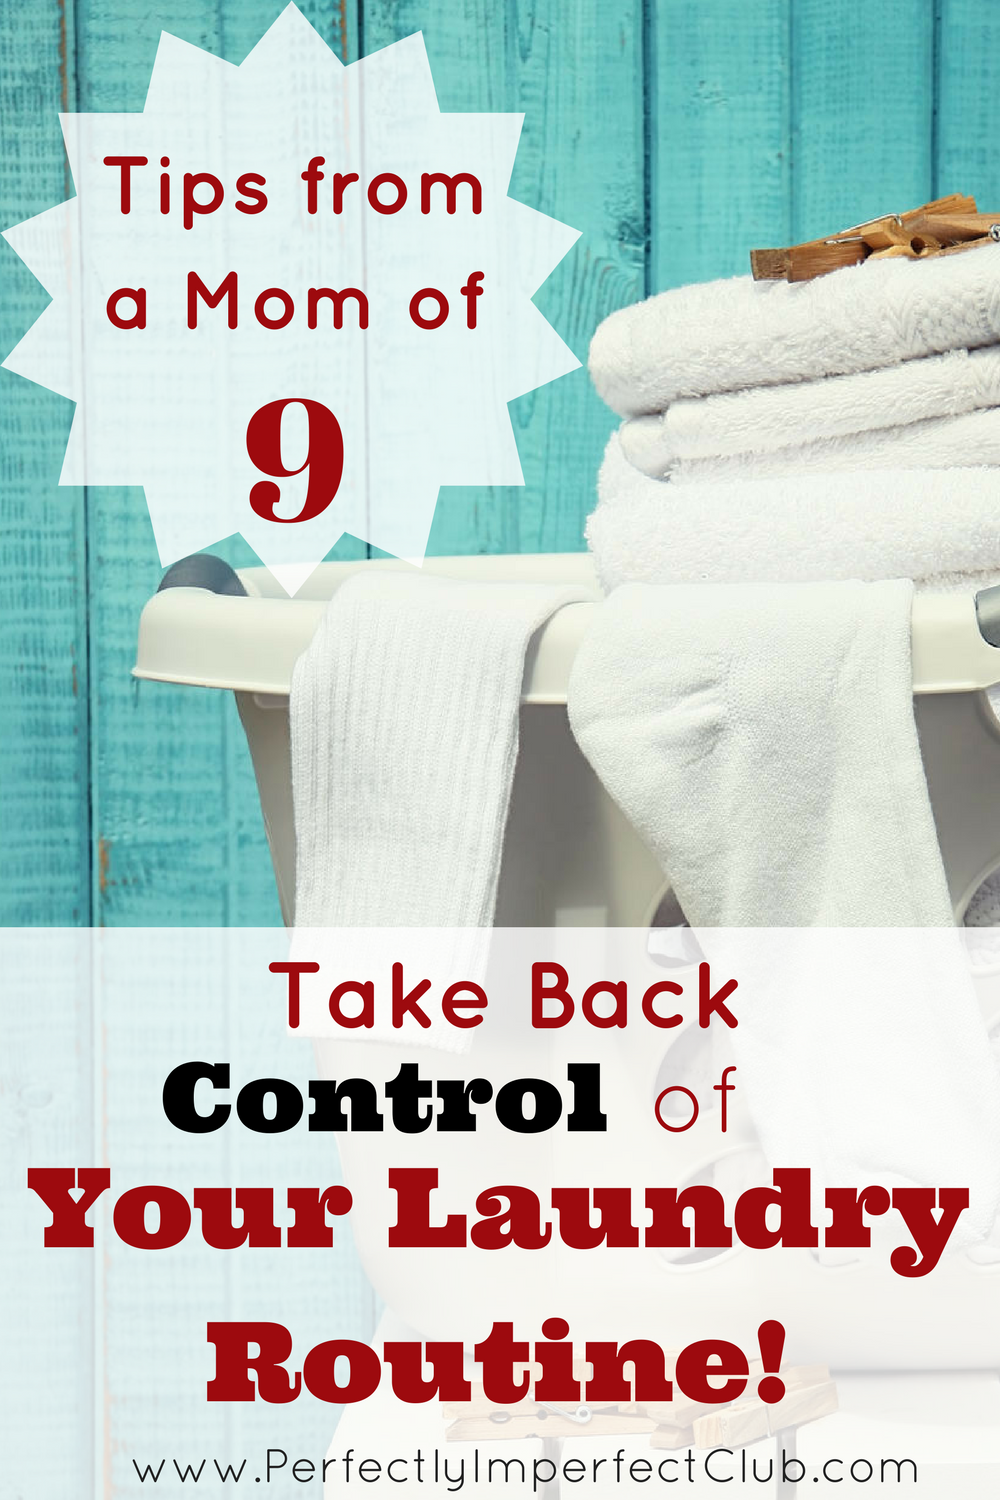 Laundry Routine Ideas from a Mom of 9!